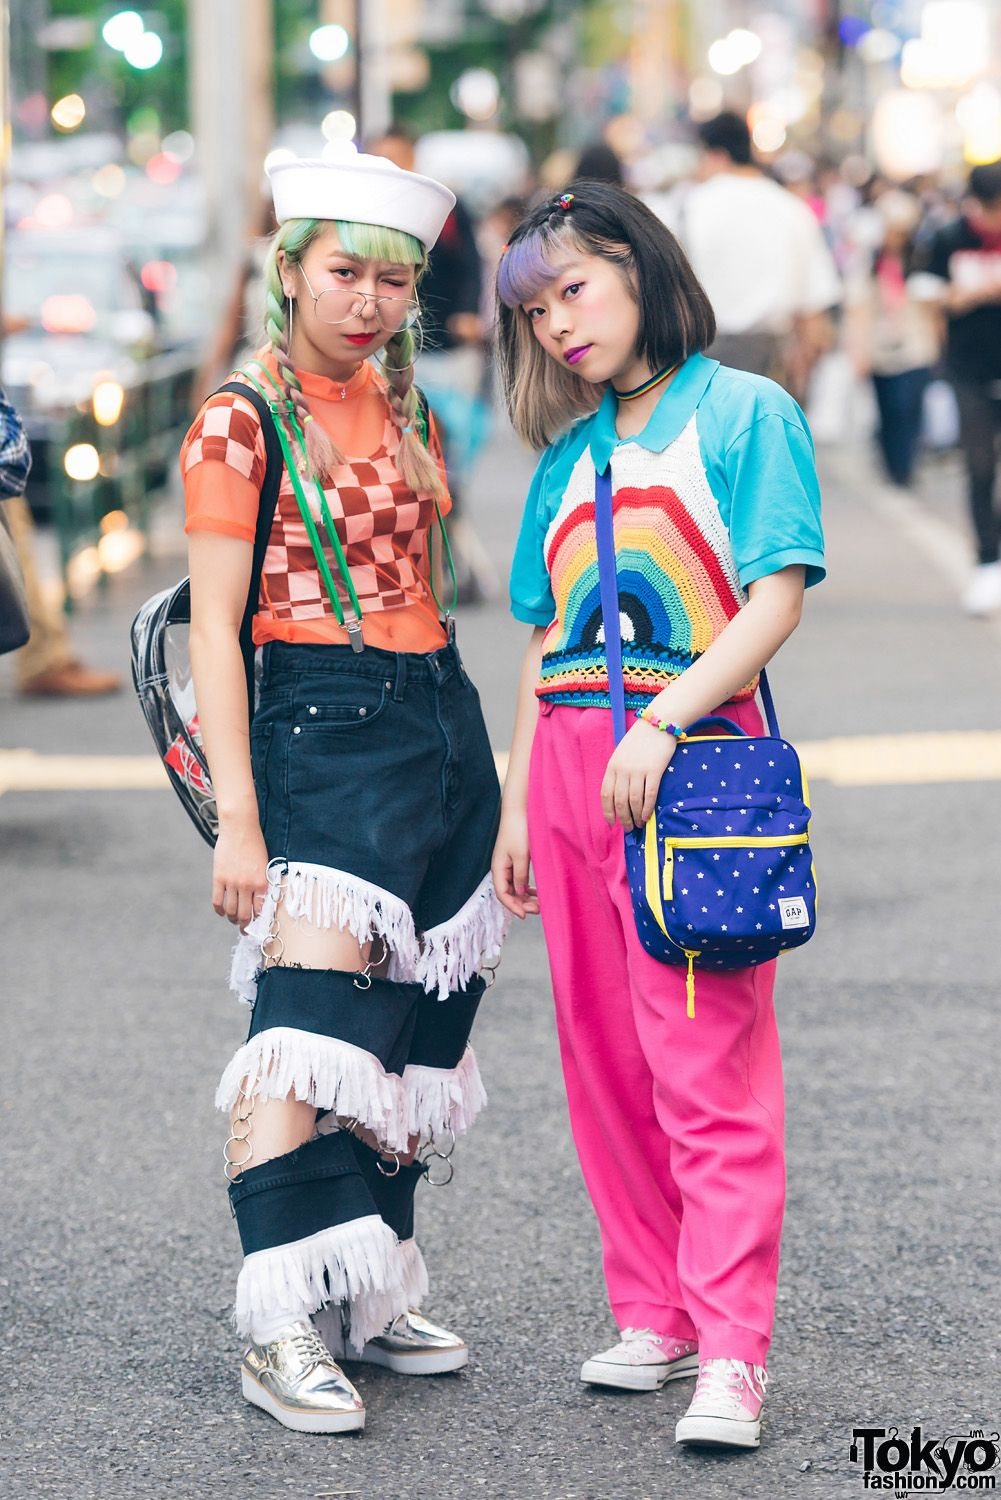 f8e9d406c5d Harajuku Girls in Colorful Street Fashion   Alien Bag w  Romantic Standard